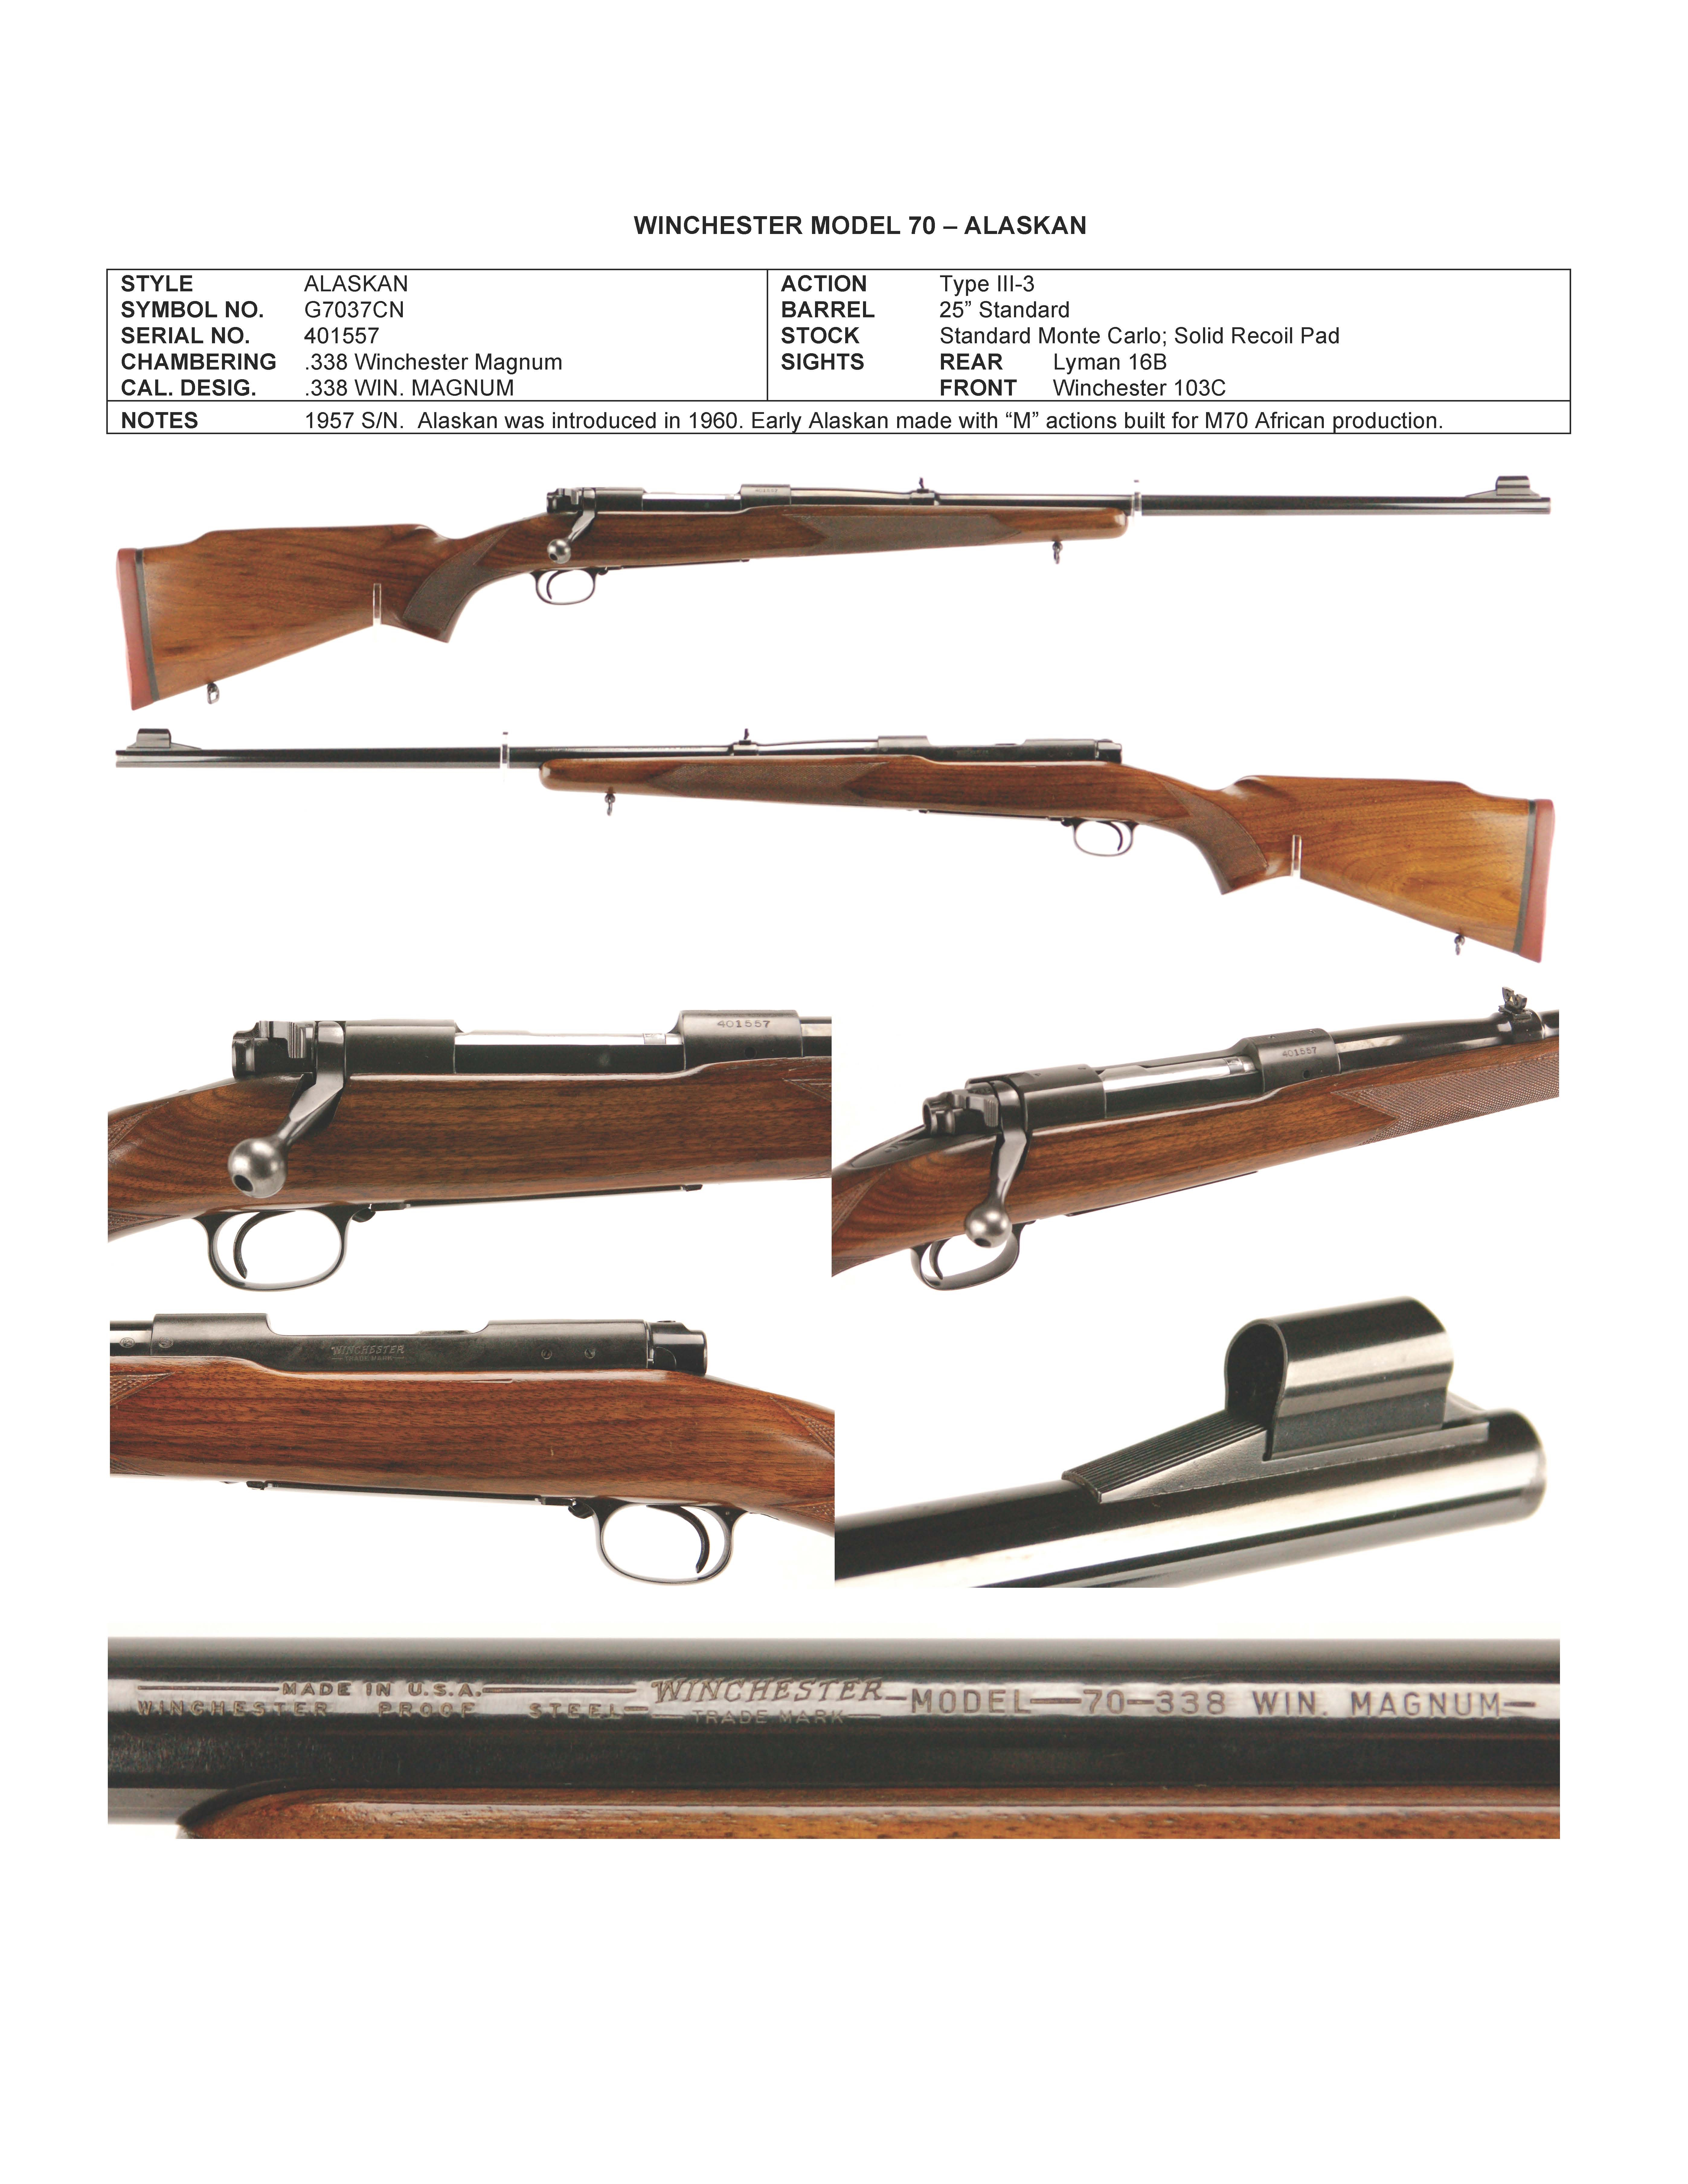 338 Alaskan Wearing Low Comb Stock Winchester Rifles